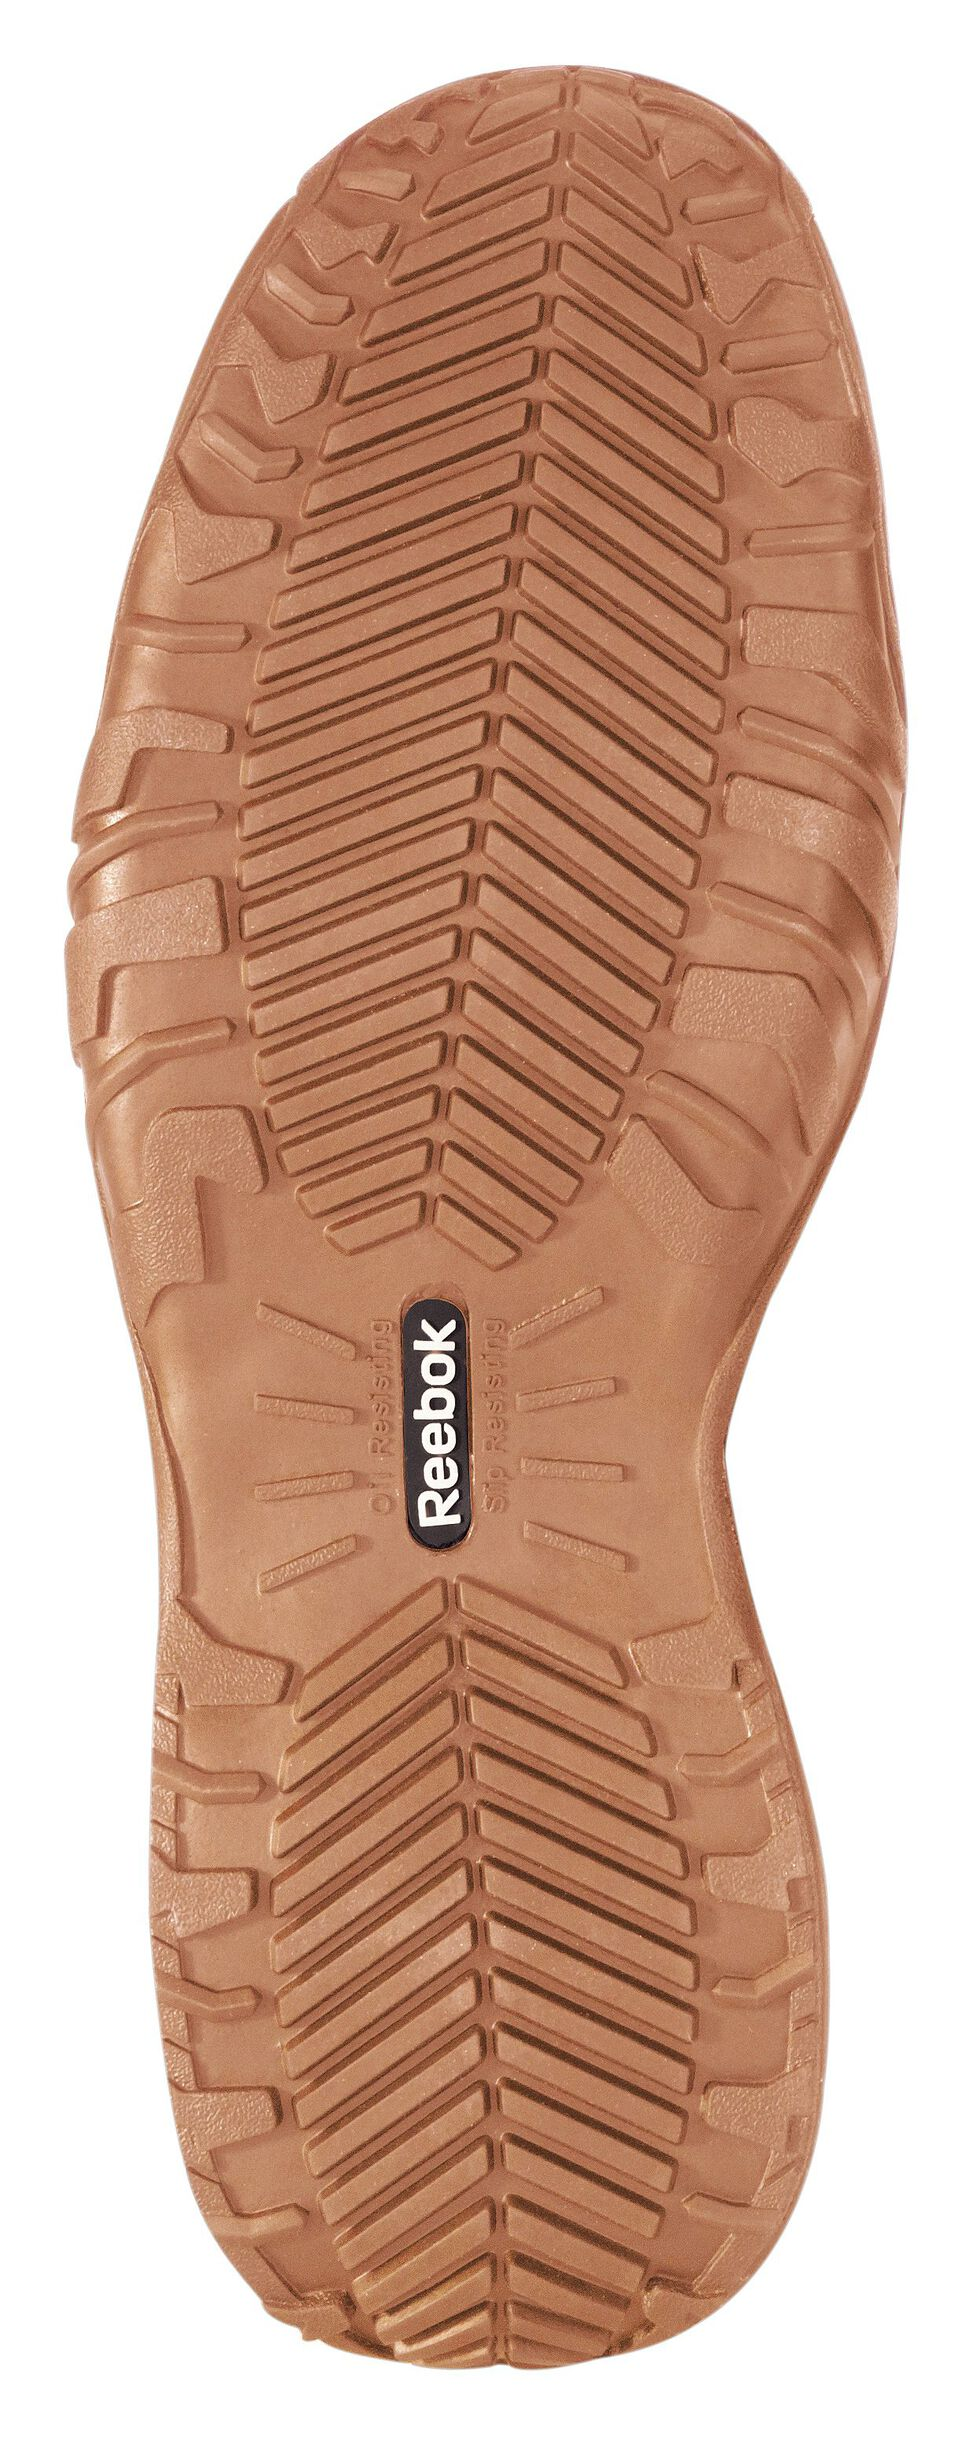 Reebok Men's Bema Work Shoes - Composite Toe, Brown, hi-res